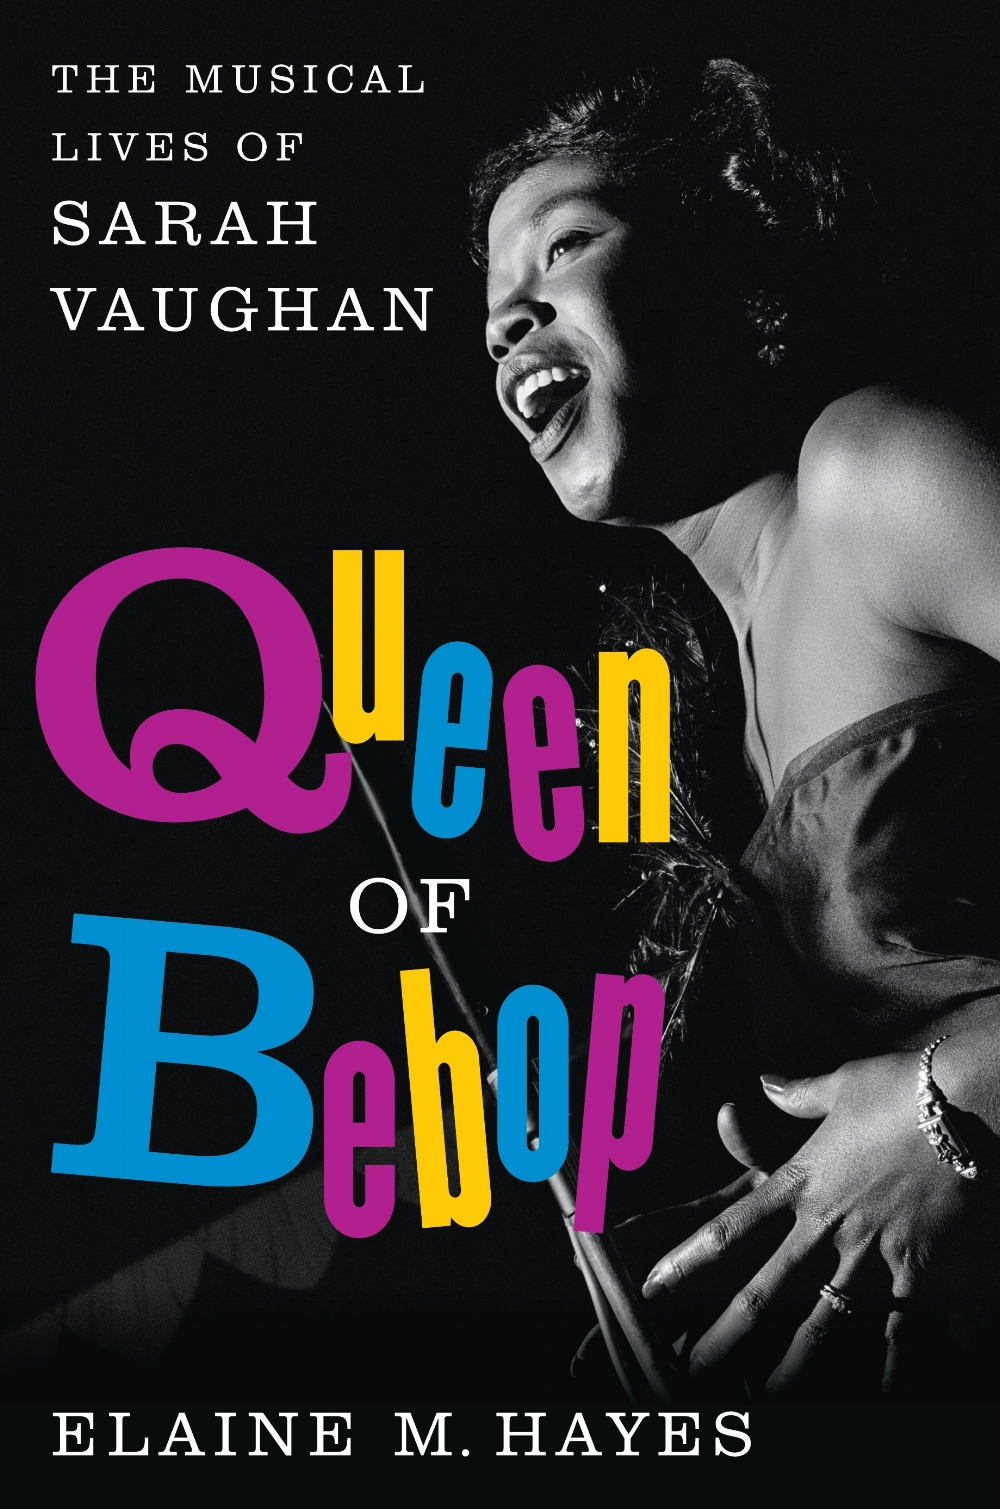 QueenBebop hc cover.JPG